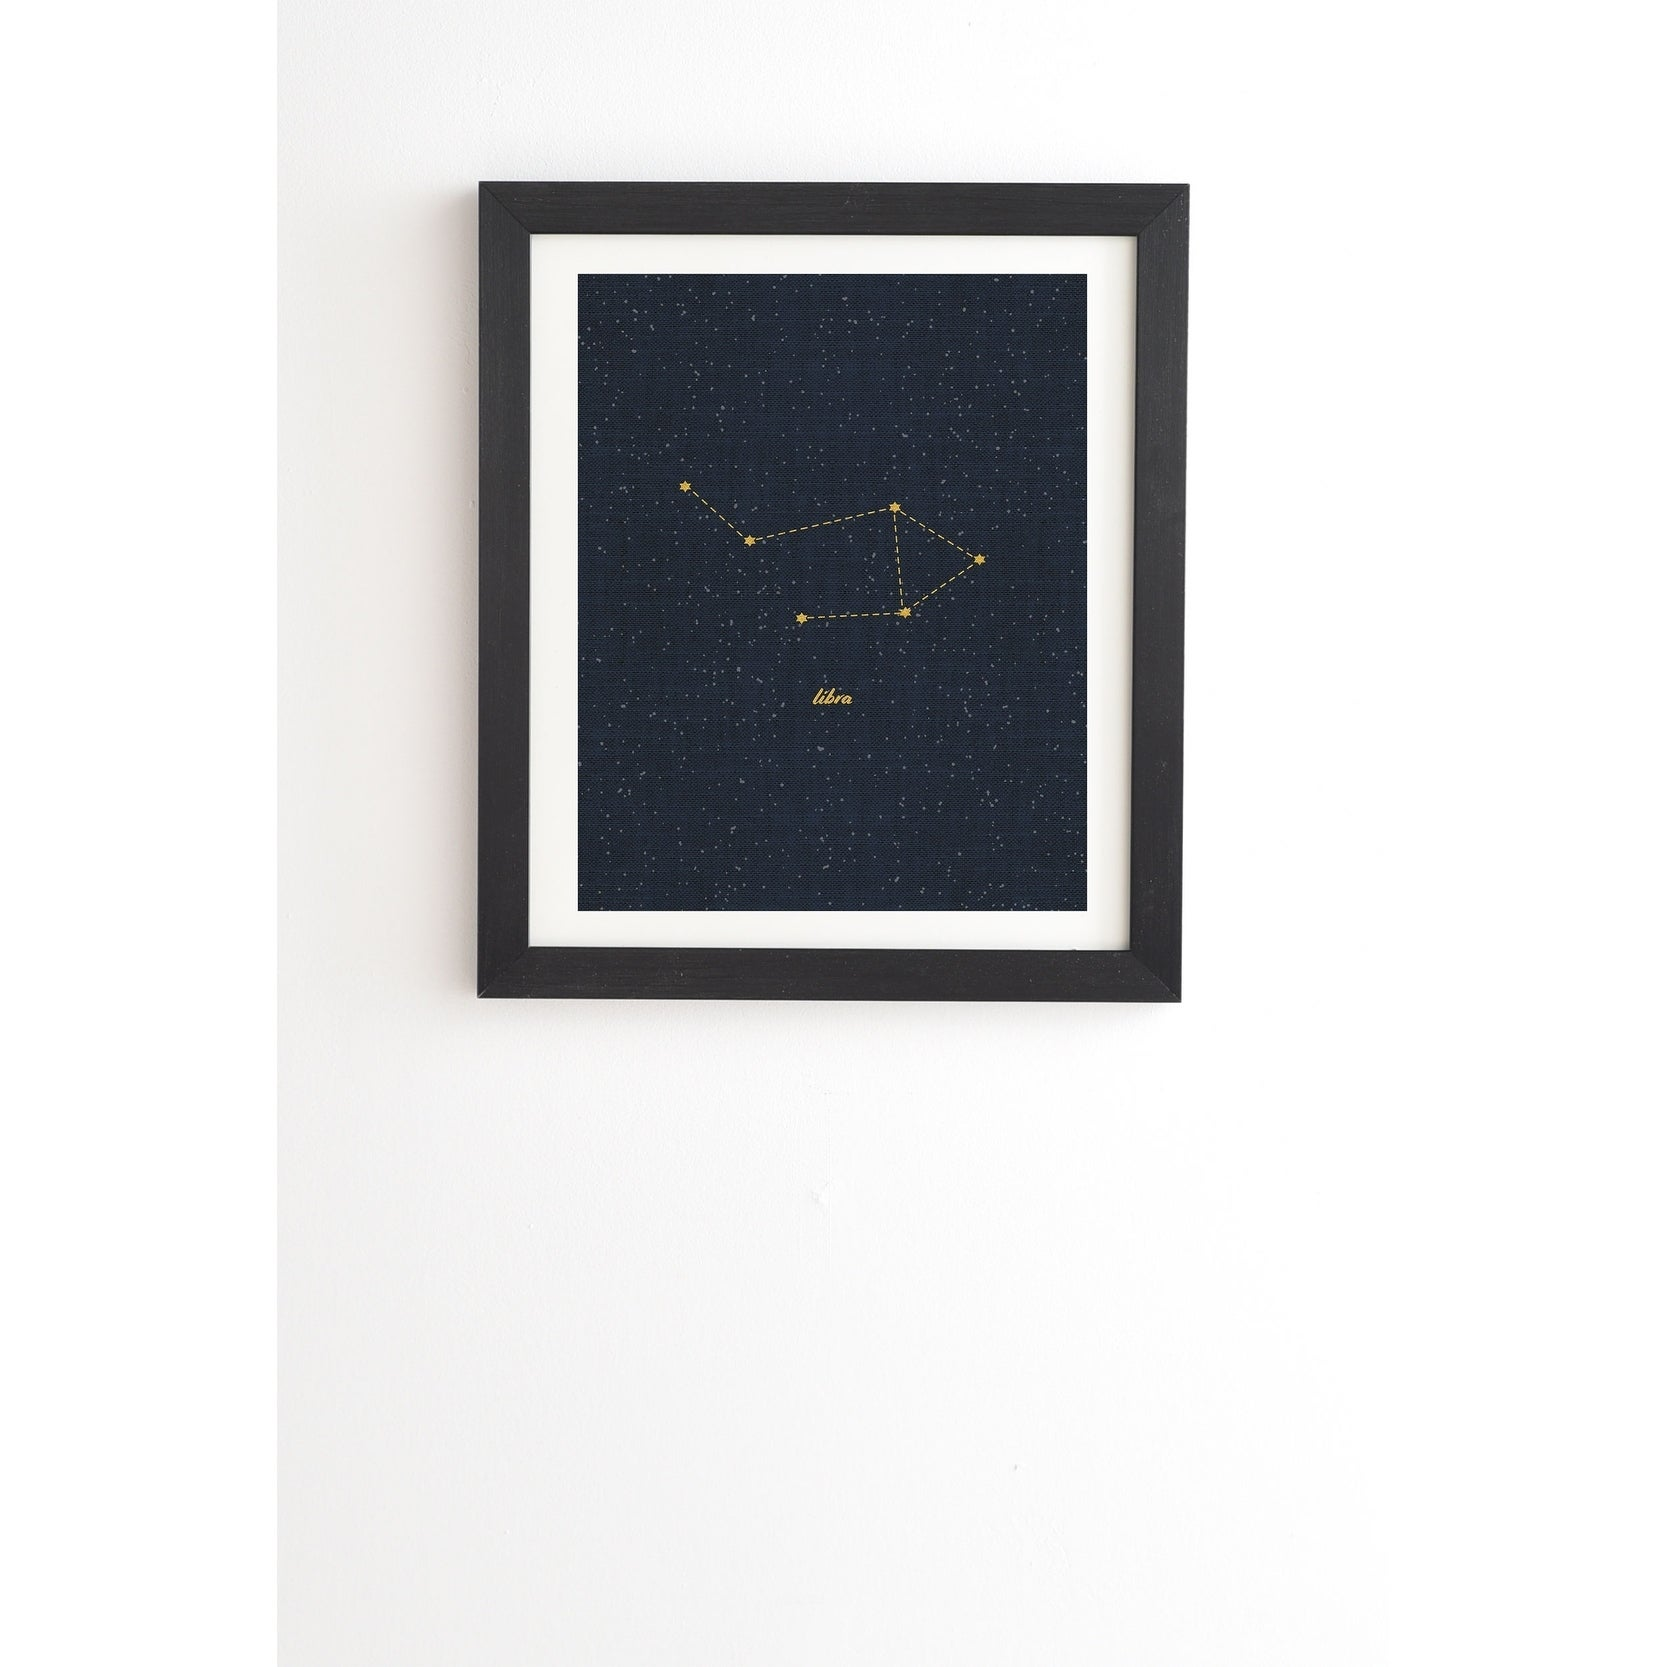 Deny designs constellation libra framed wall art 3 frame colors blue yellow